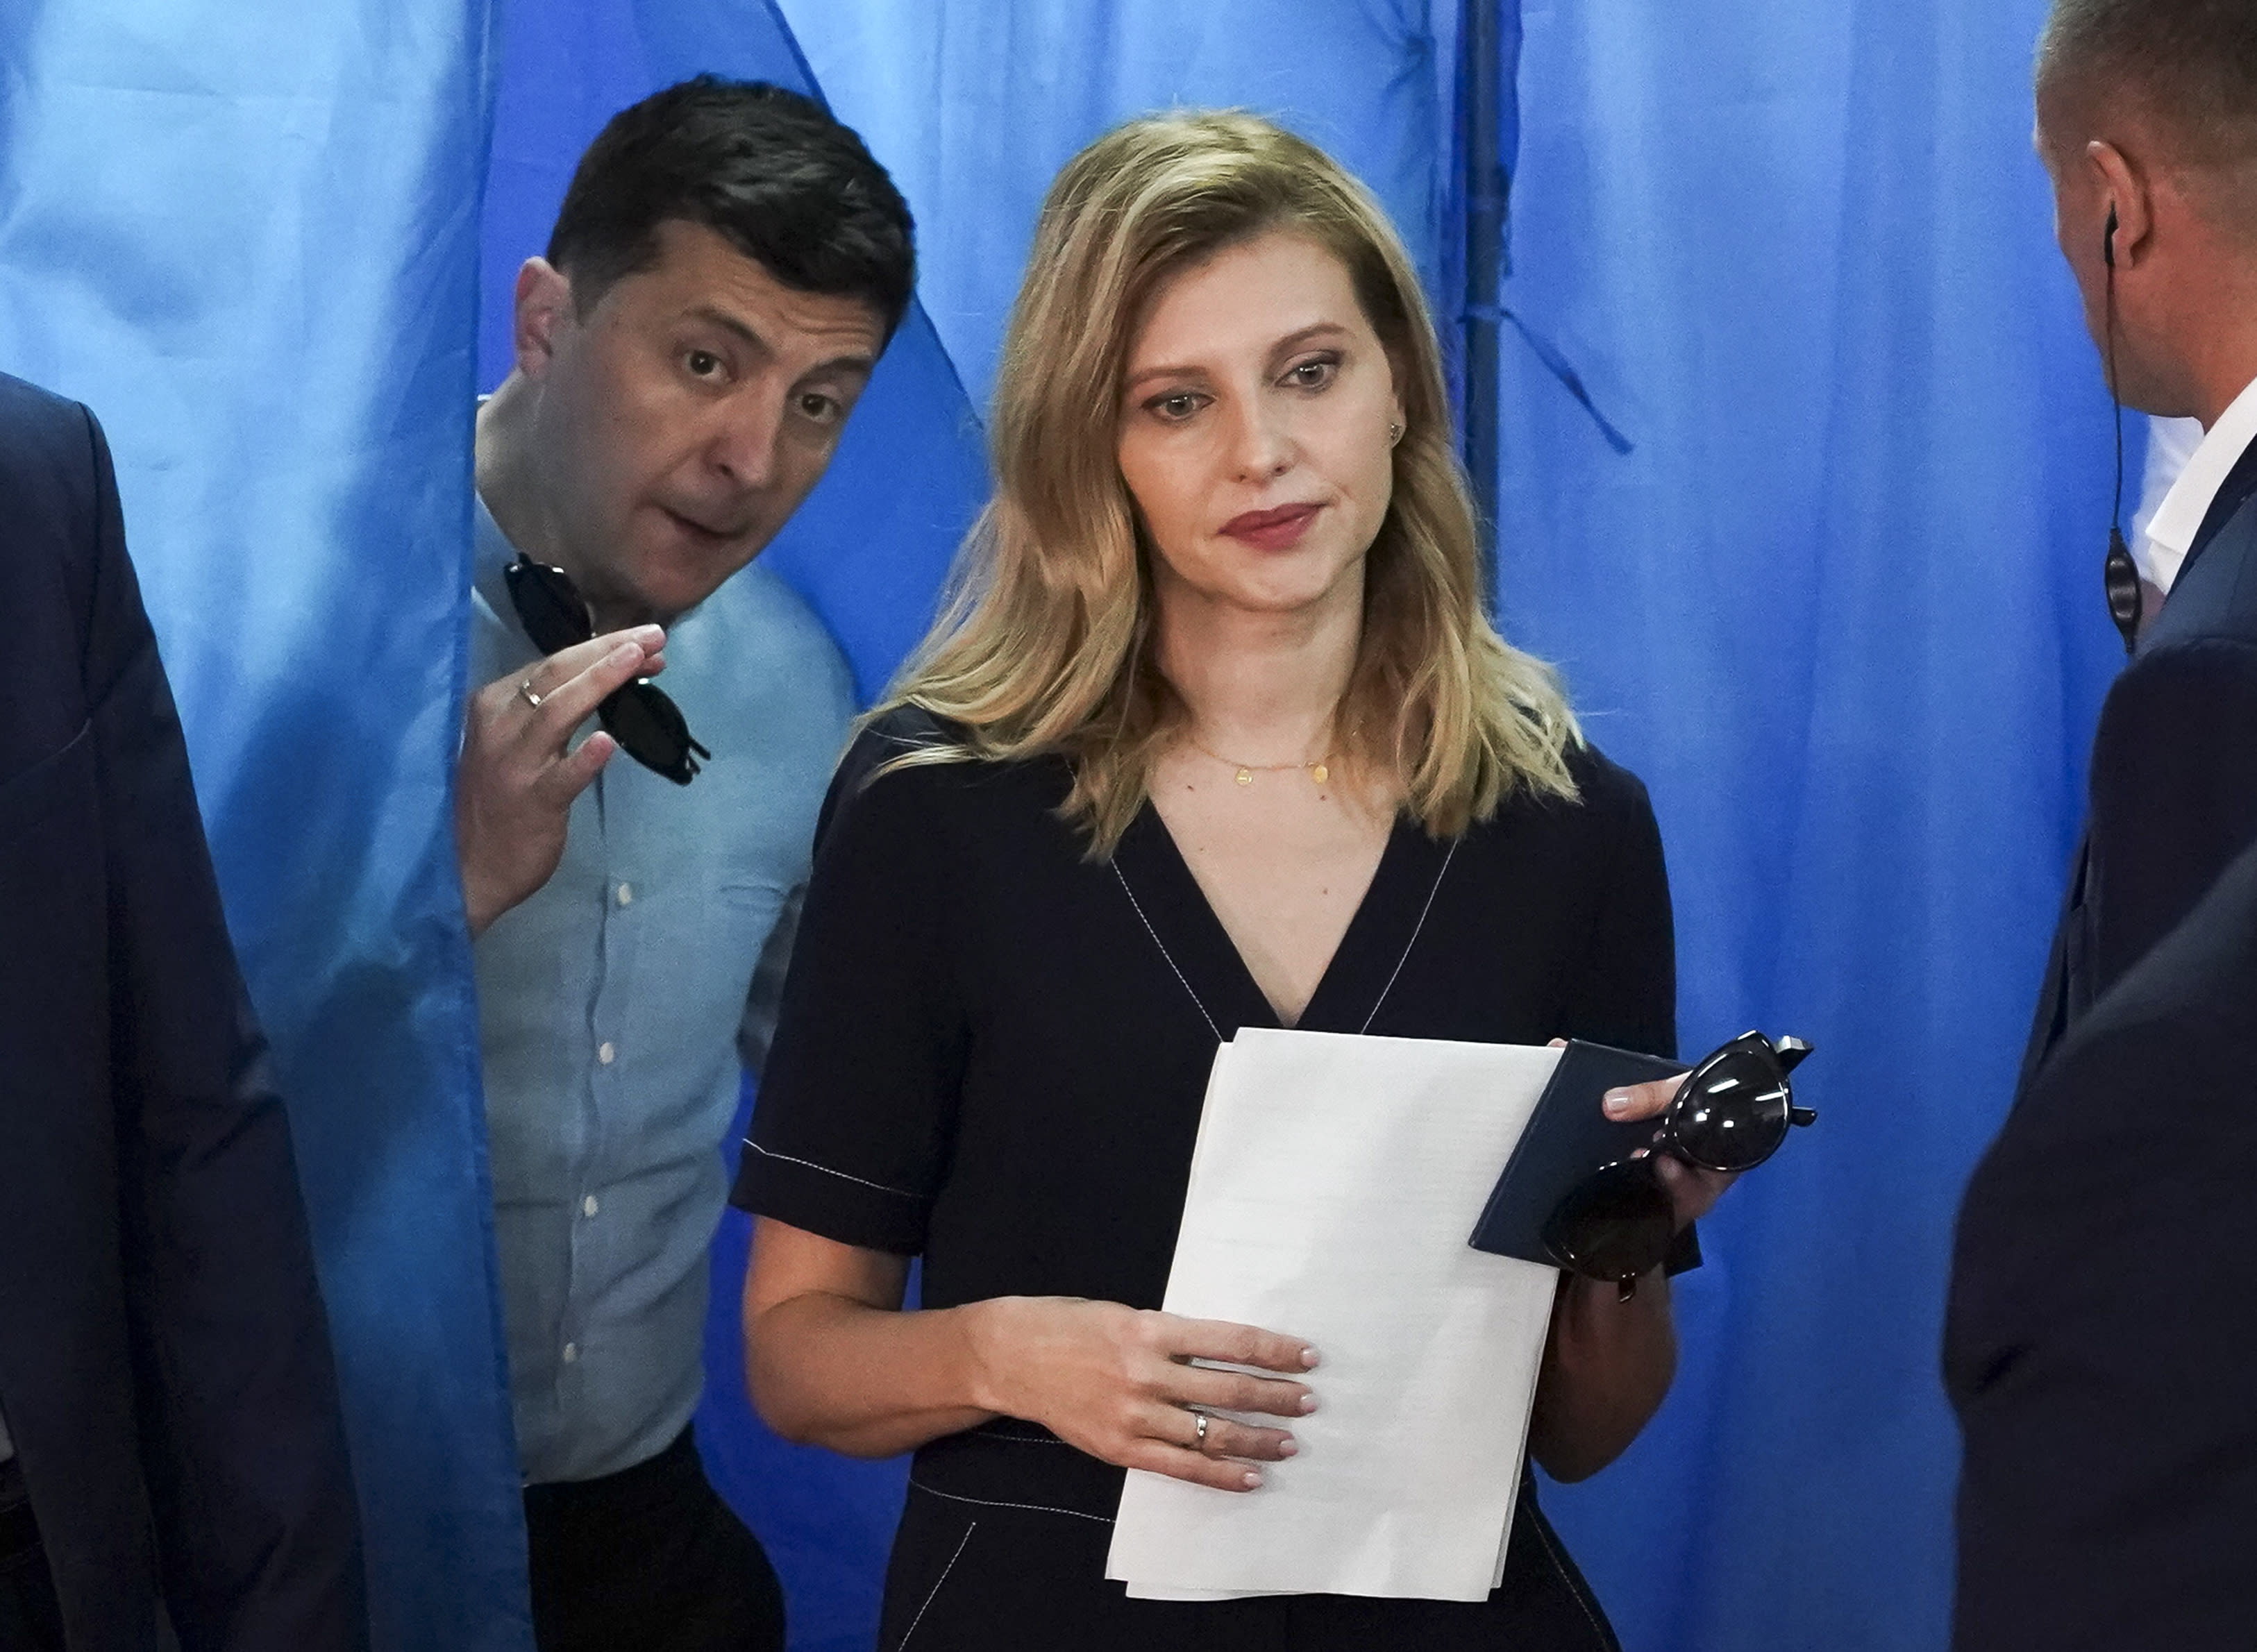 Ukrainian President Volodymyr Zelenskiy, ,left, and his wife Olena Zelenska leave a booth at a polling station during a parliamentary election in Kiev, Ukraine, Sunday, July 21, 2019. Ukrainians are voting in an early parliamentary election in which the new party of President Volodymyr Zelenskiy is set to take the largest share of votes. (AP Photo/Evgeniy Maloletka)